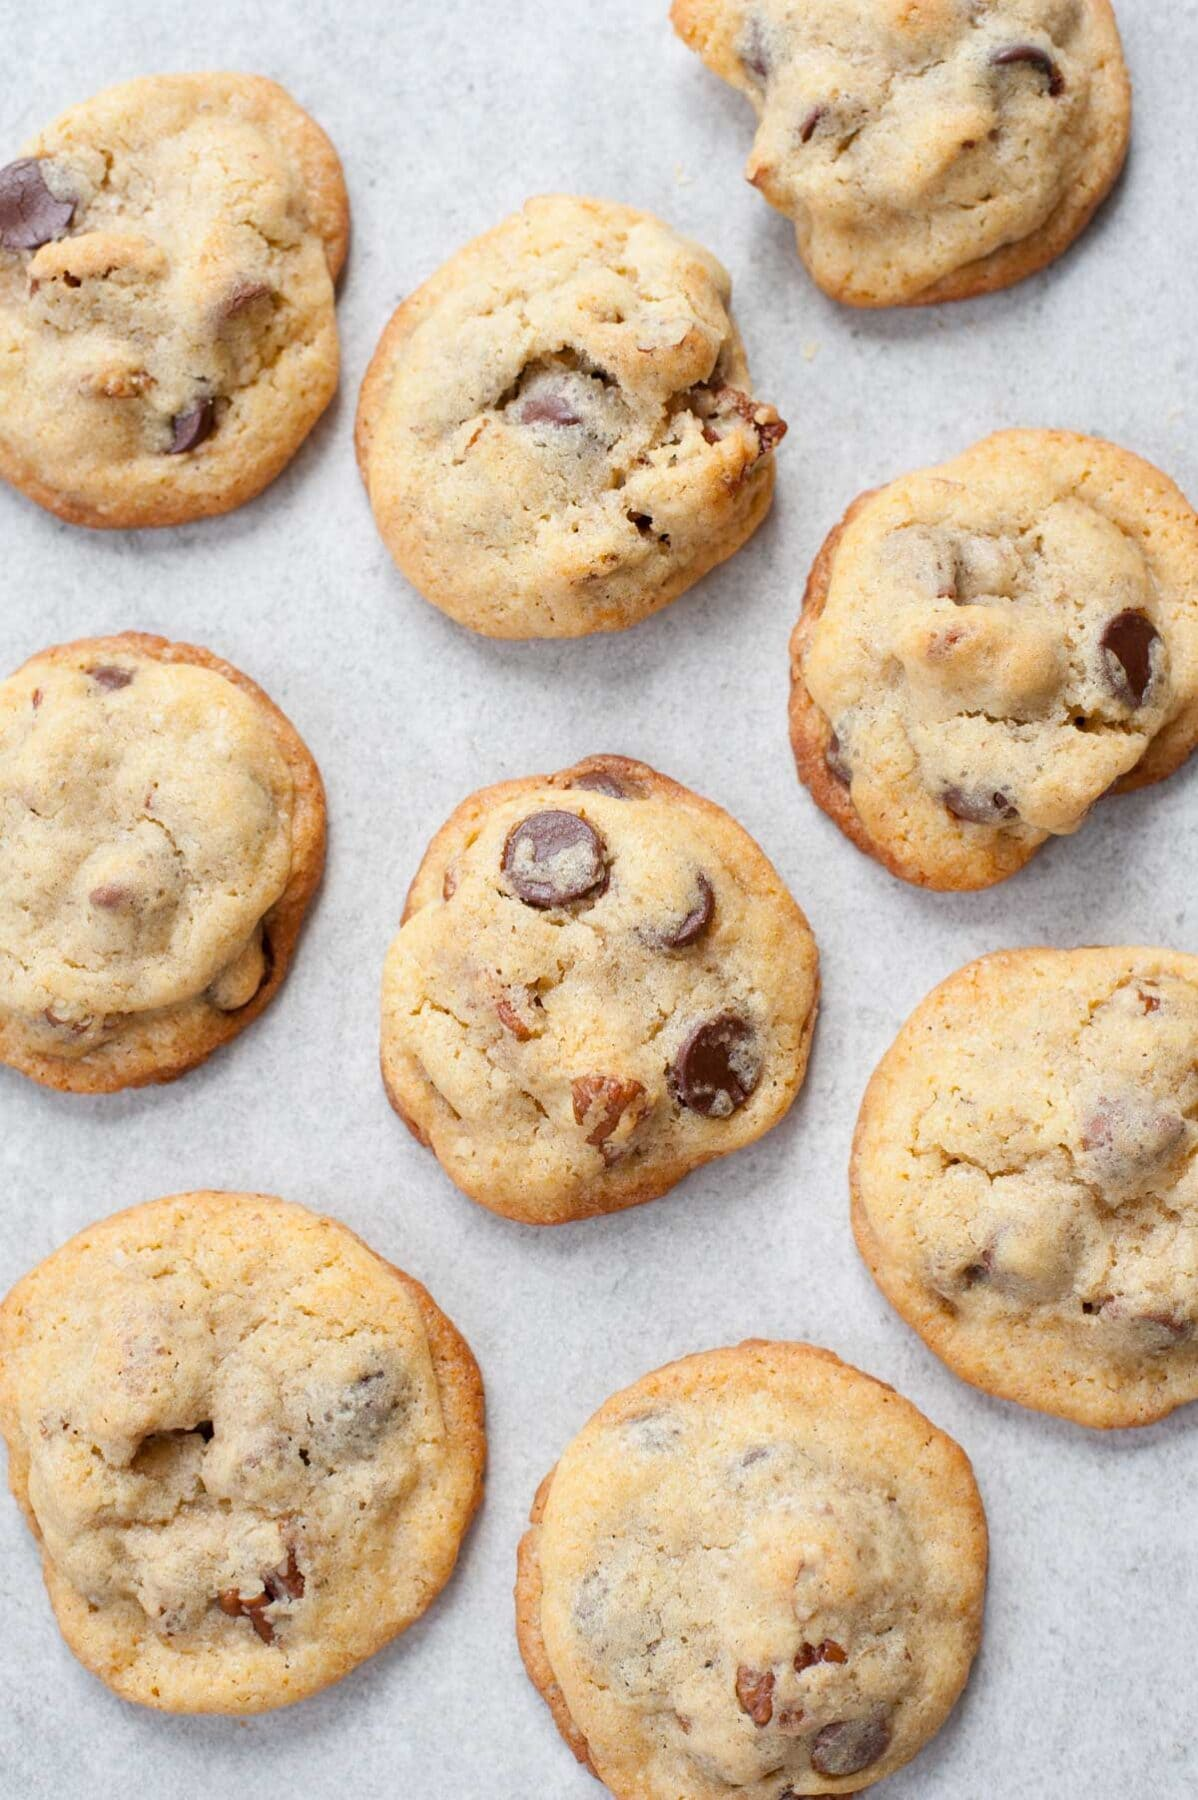 Chocolate chip pecan cookies on a grey background.